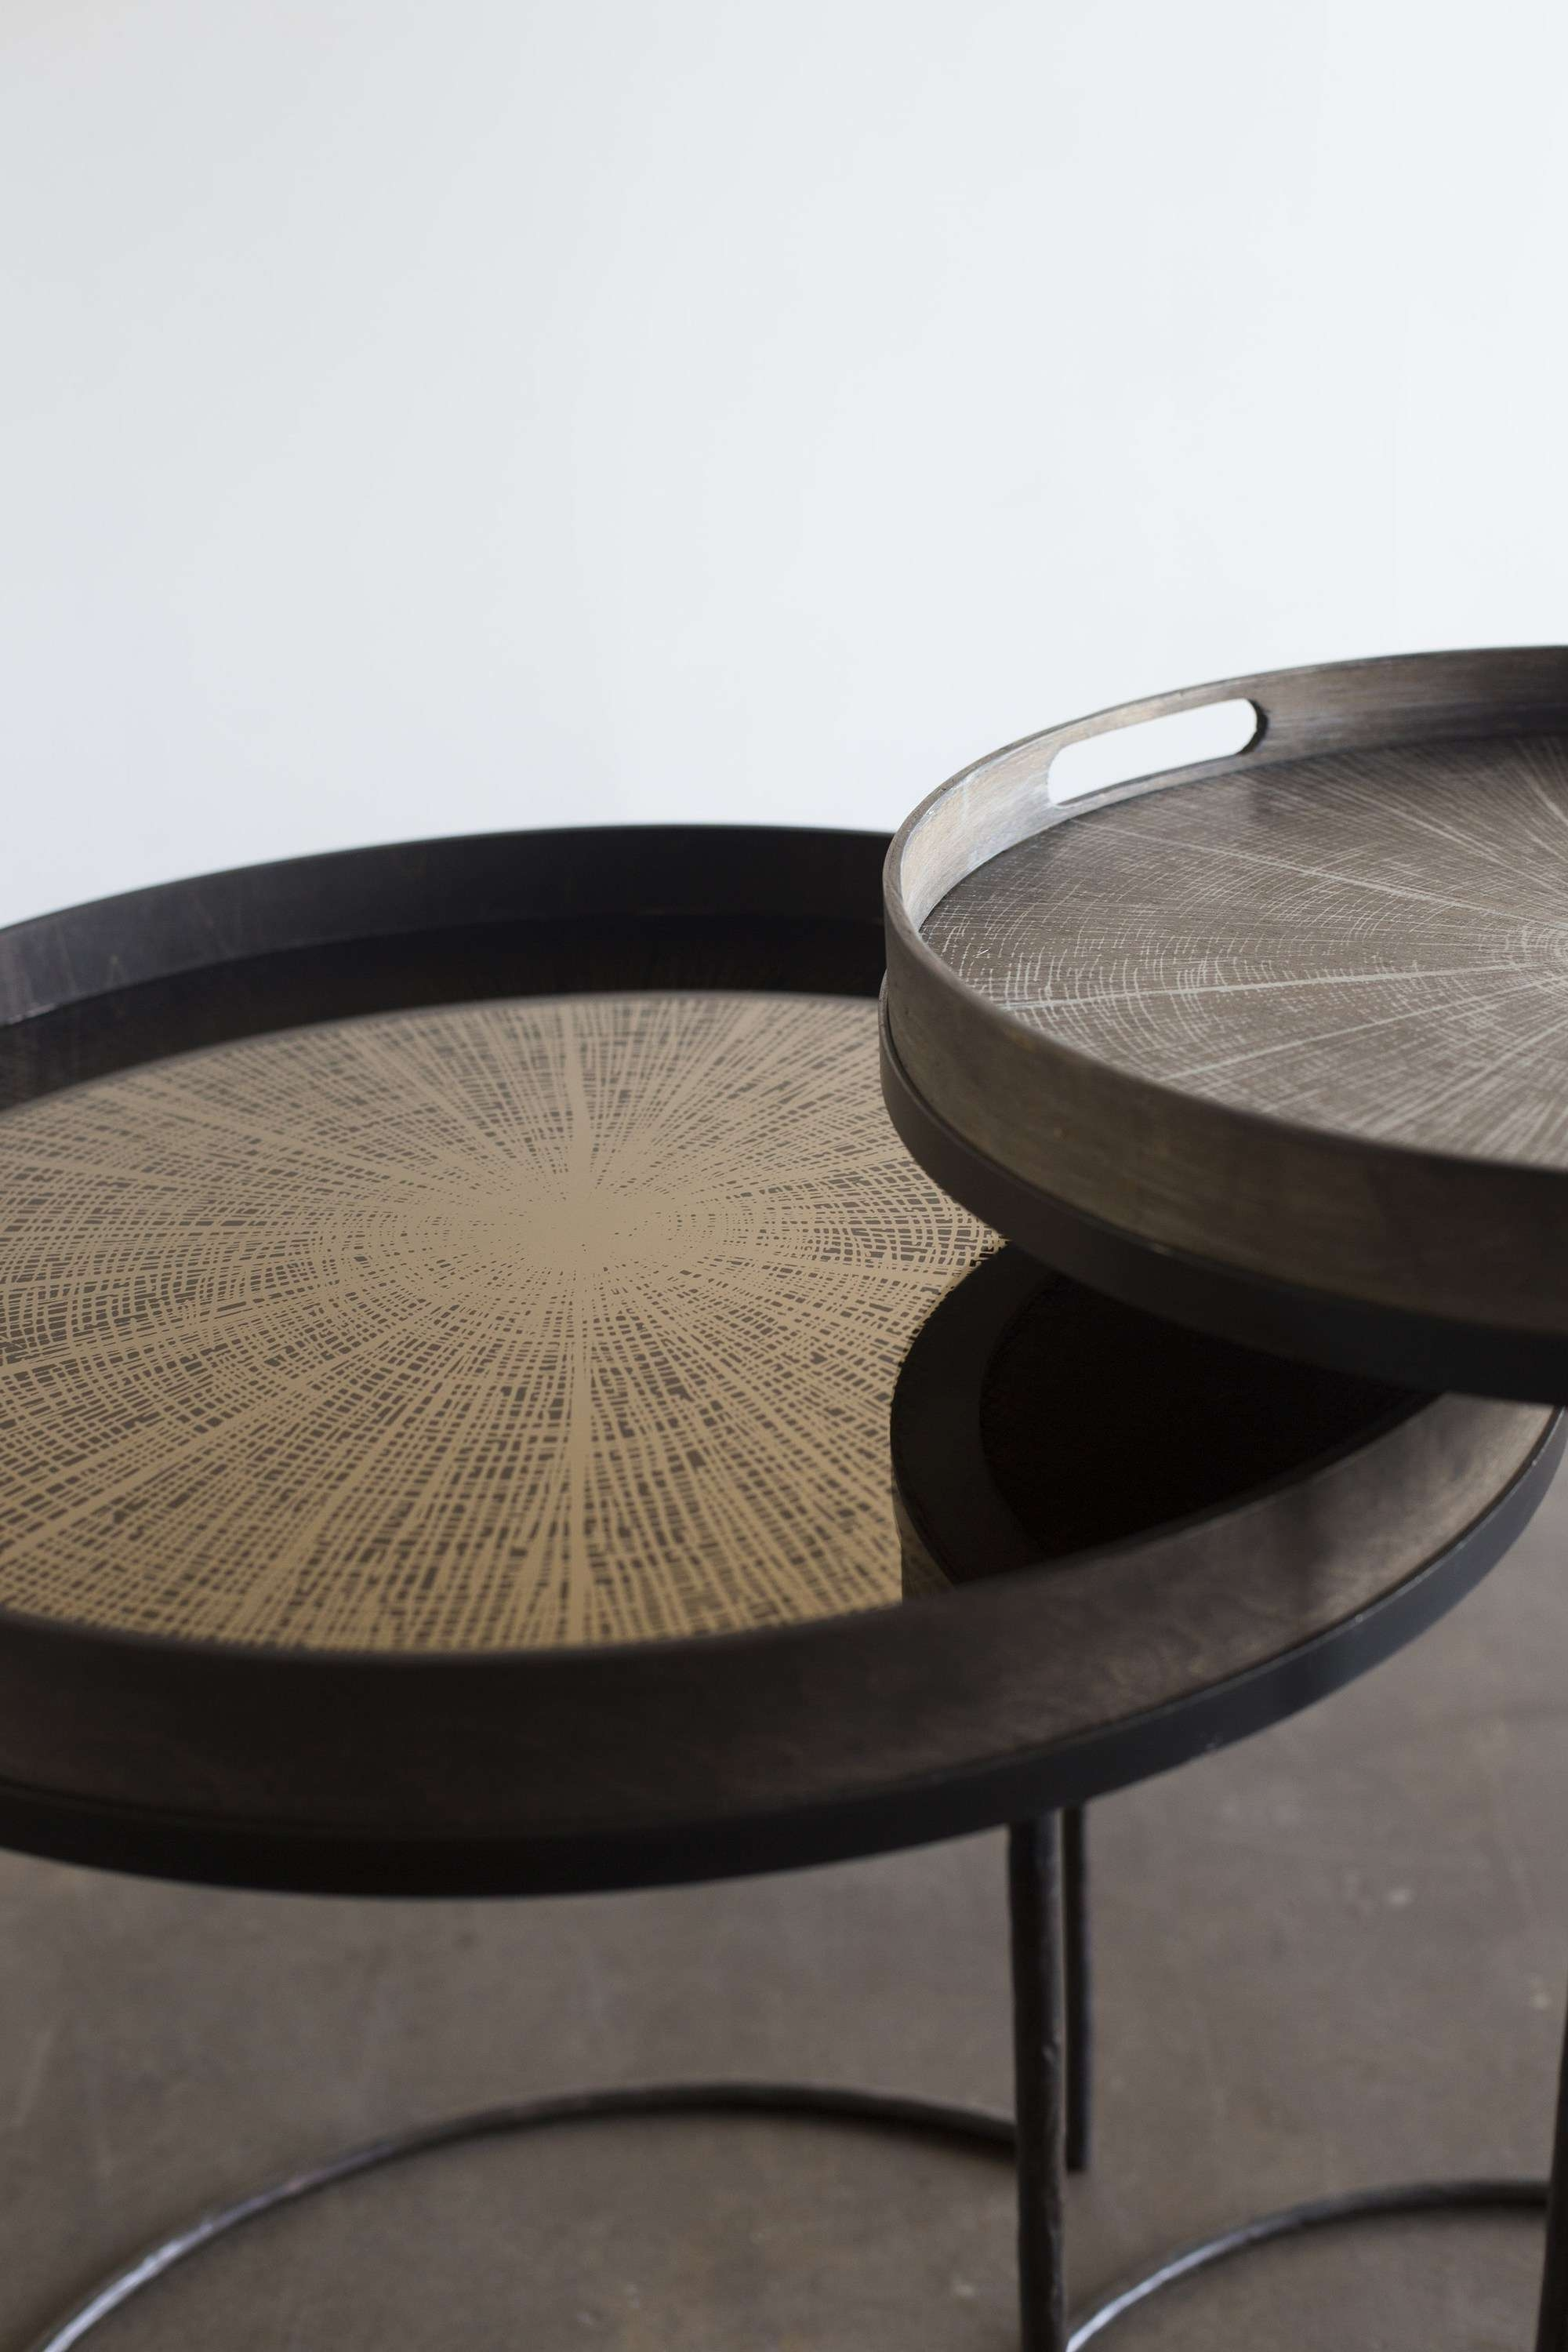 Collection In Round Coffee Table Tray With Round Coffee Table With In Latest Round Coffee Table Trays (View 8 of 20)